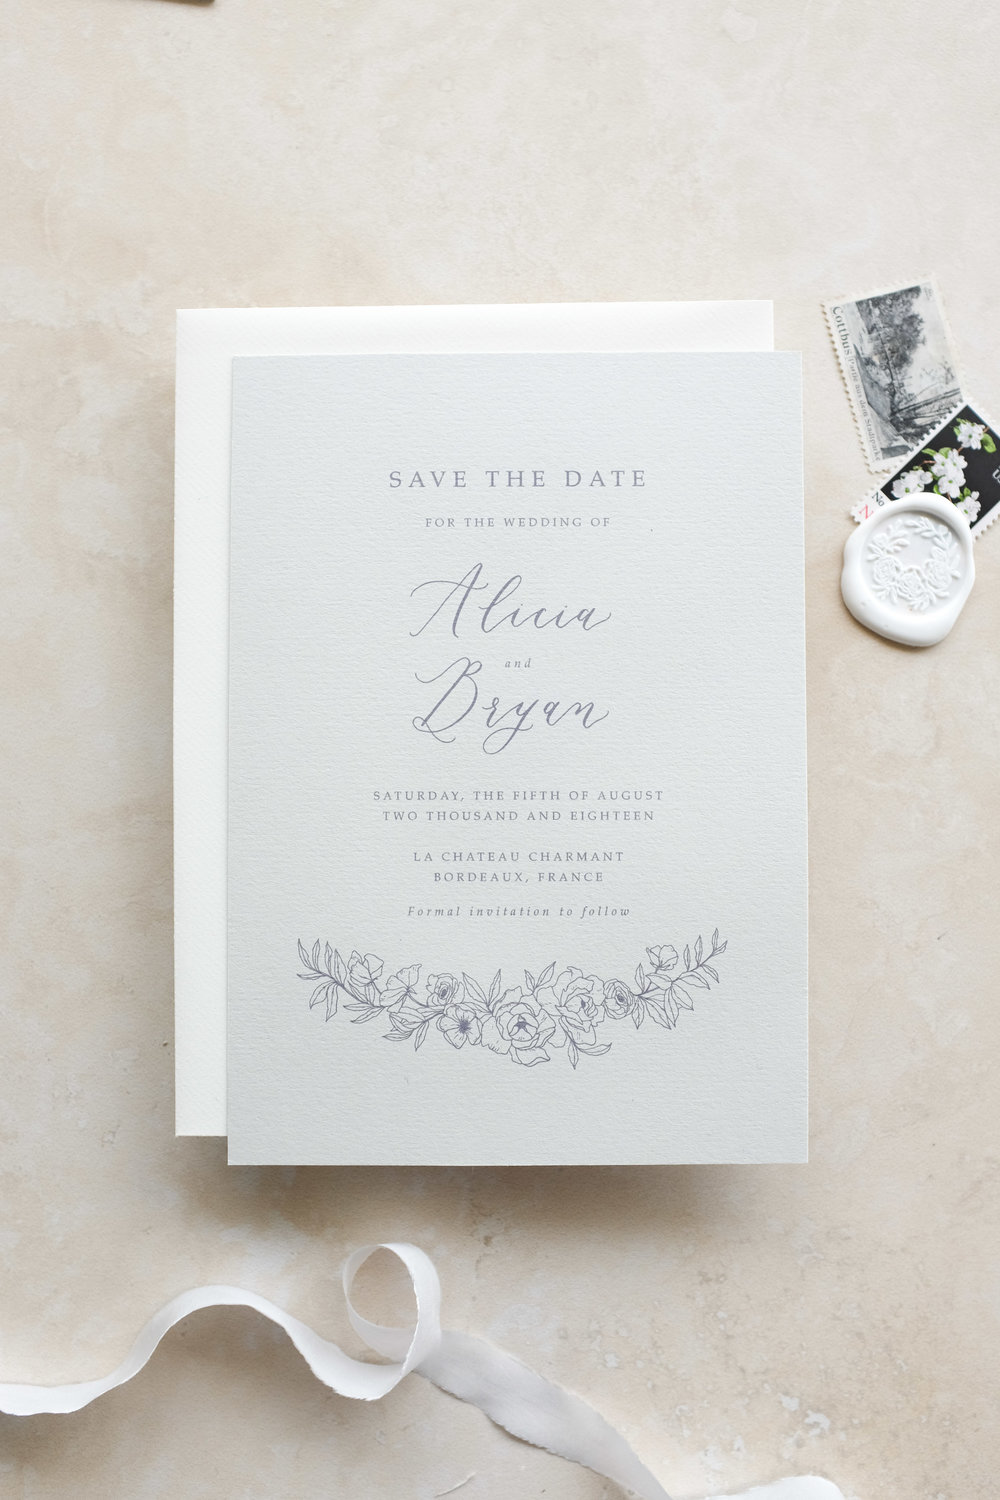 In Bloom Save The Date Suite From $480.00 nzd